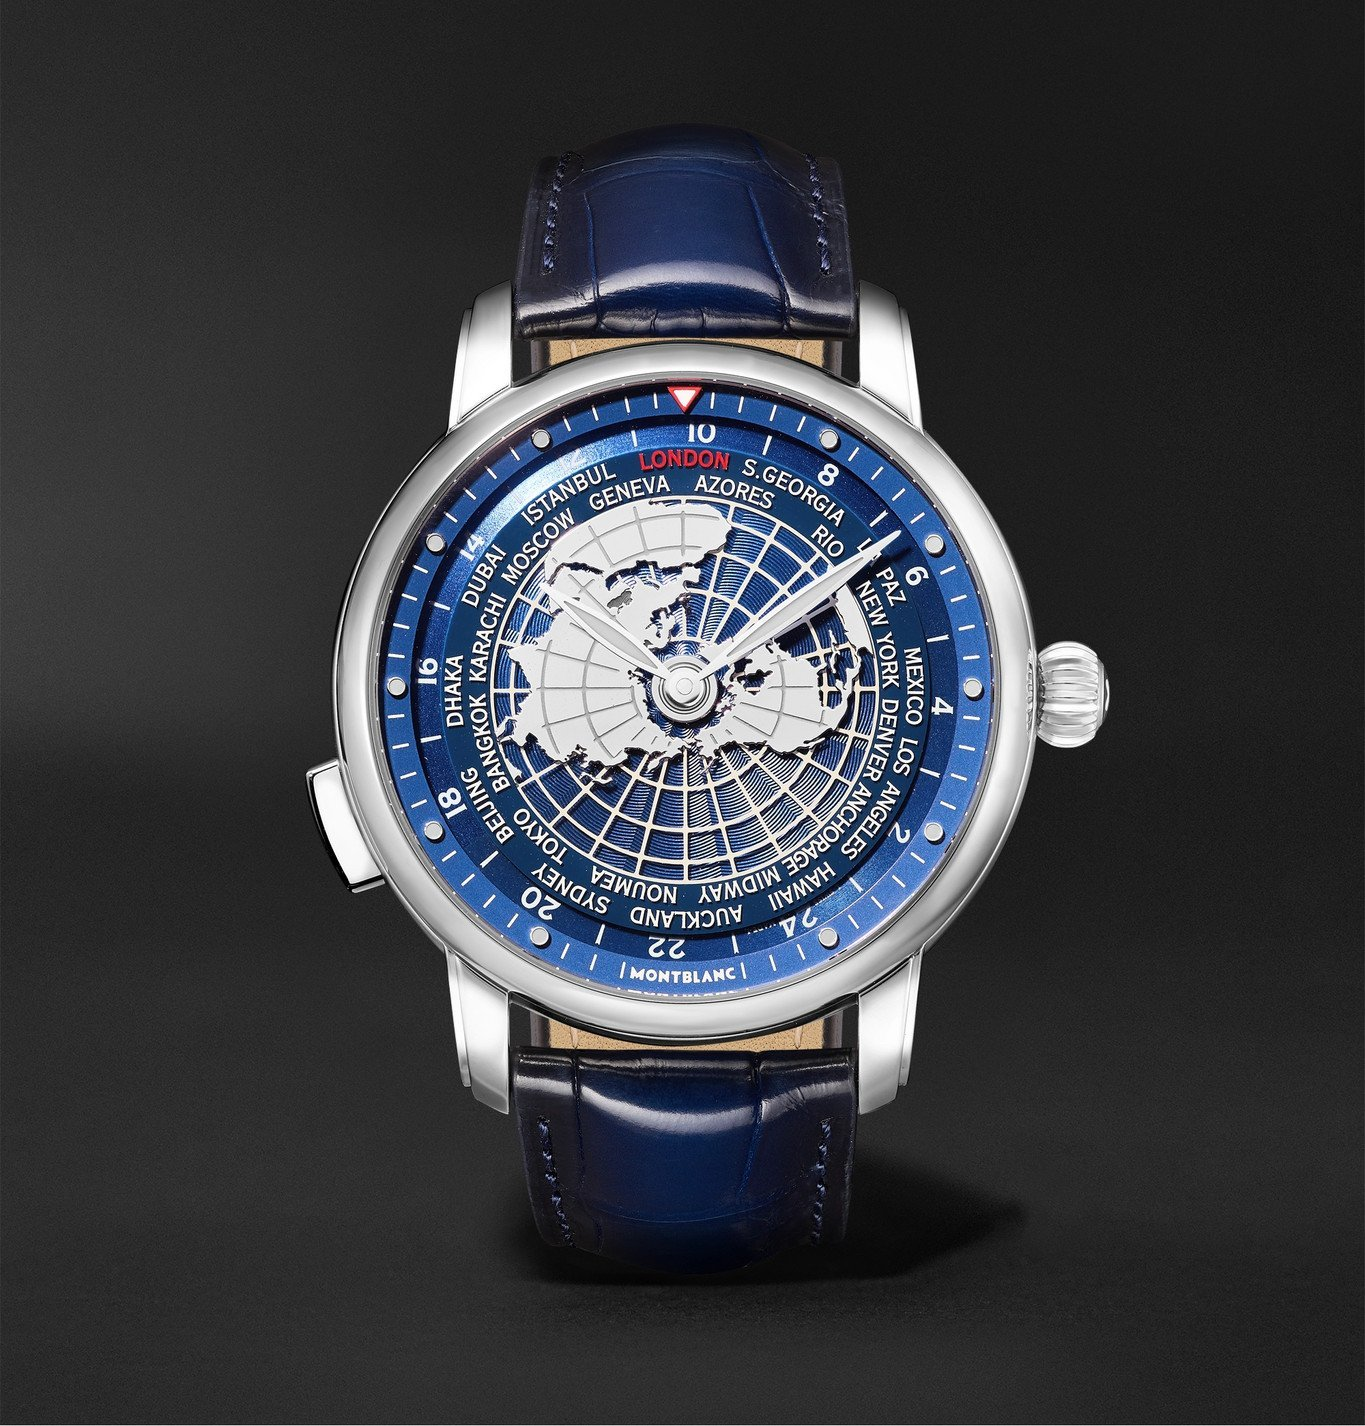 Photo: Montblanc - Star Legacy Orbis Terrarum Automatic 43mm Stainless Steel and Alligator Watch, Ref. No. 126108 - Blue